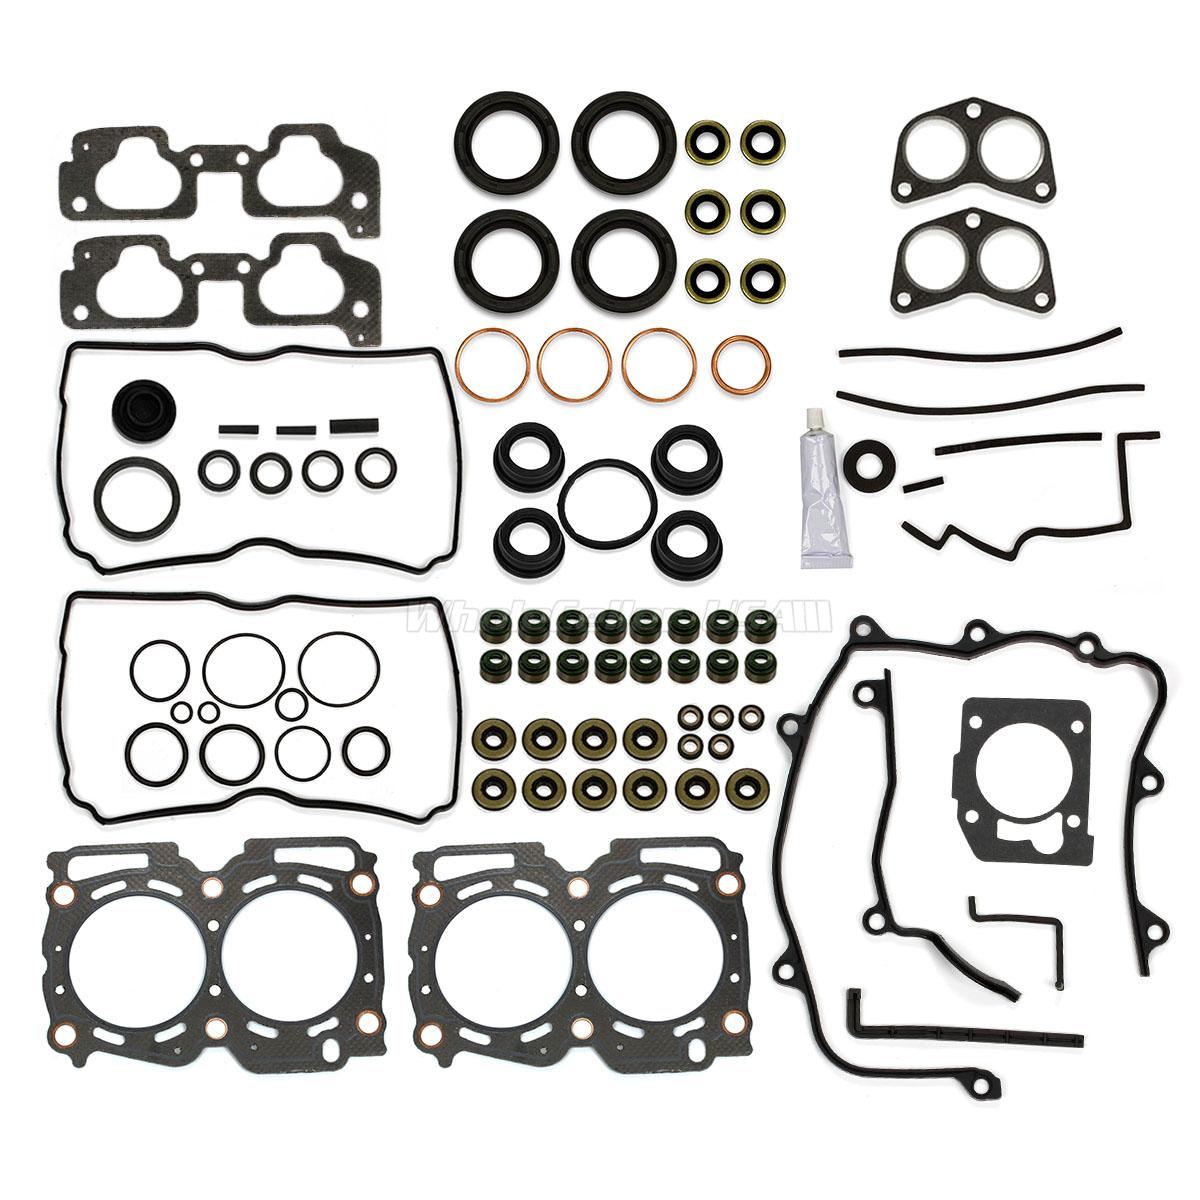 For Subaru Legacy Impreza Forester Outback 2 5l Cylinder